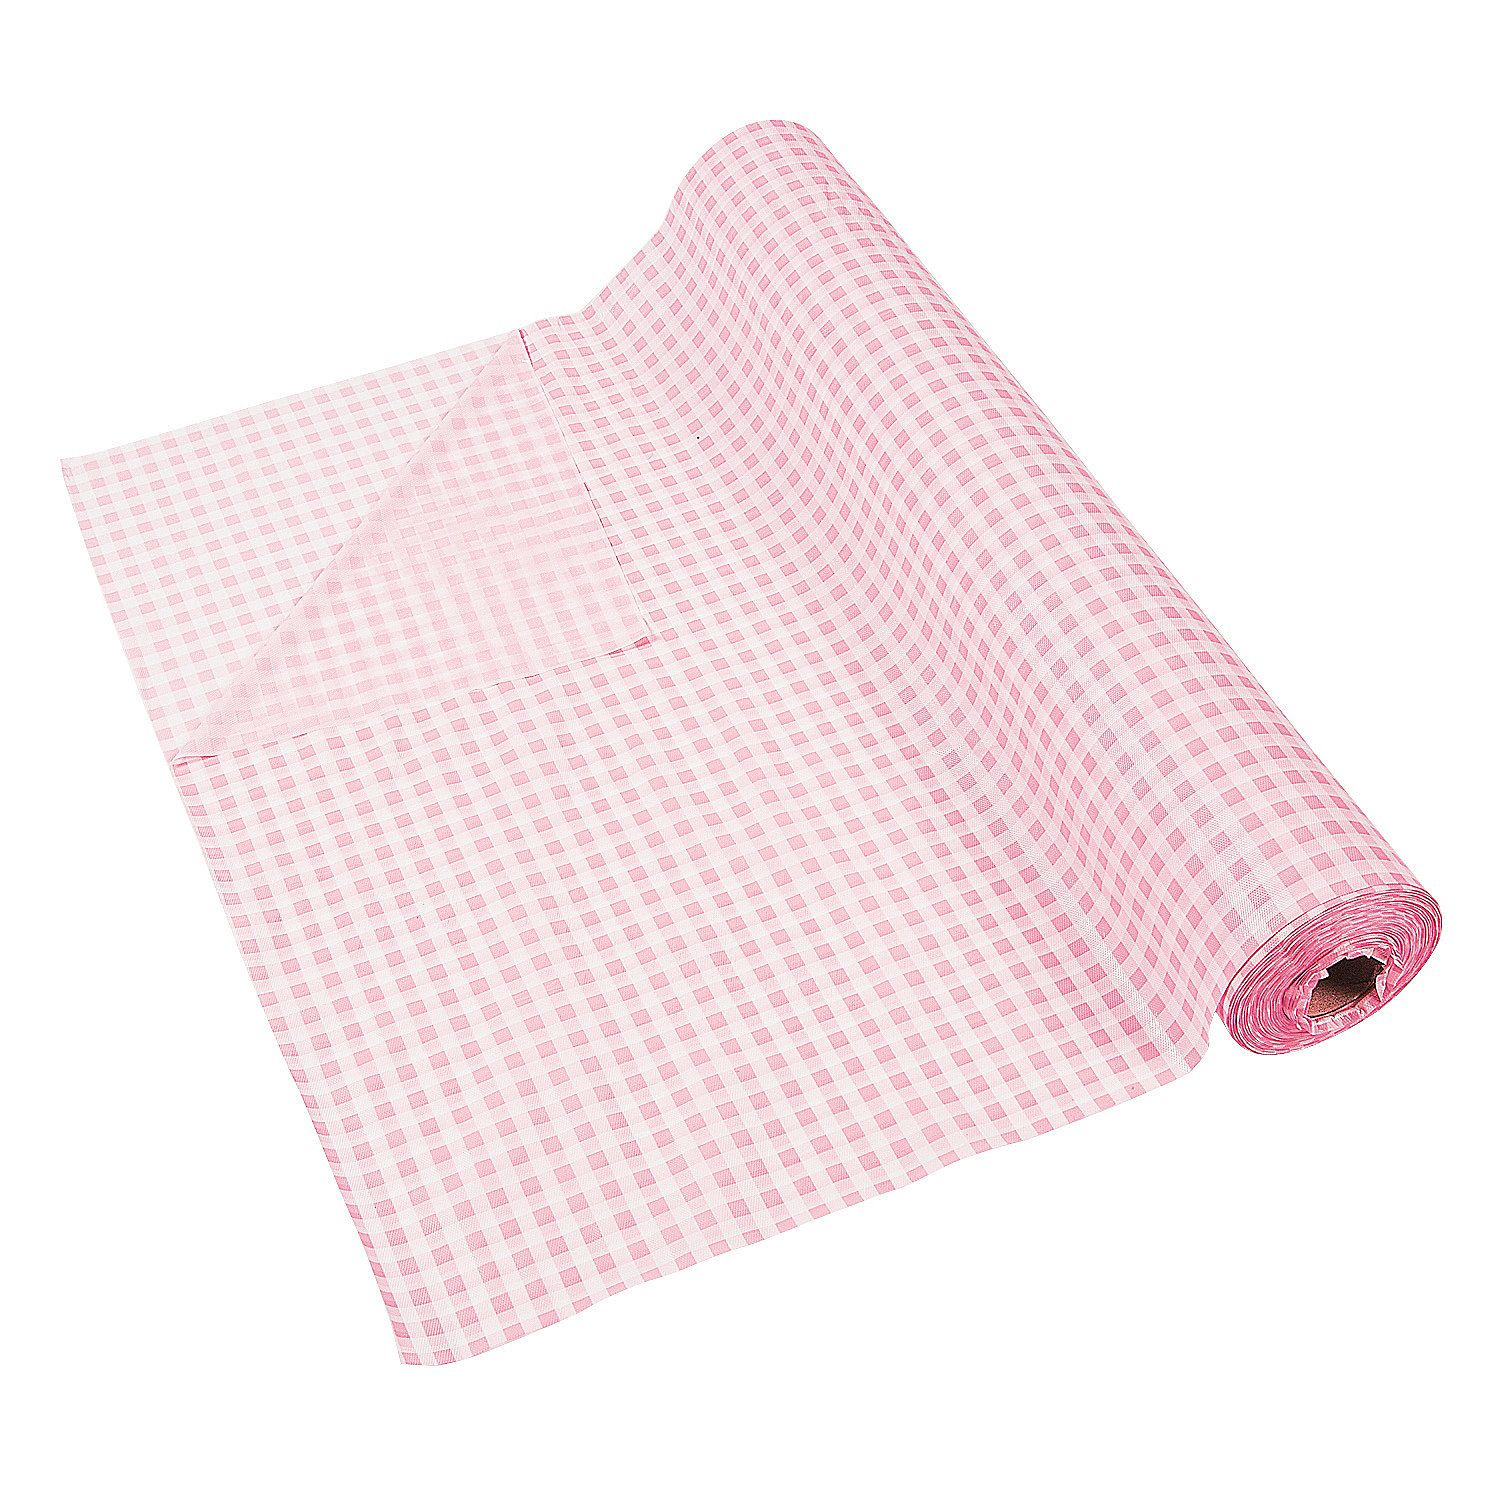 Light Pink Gingham Tablecloth Roll Orientaltrading